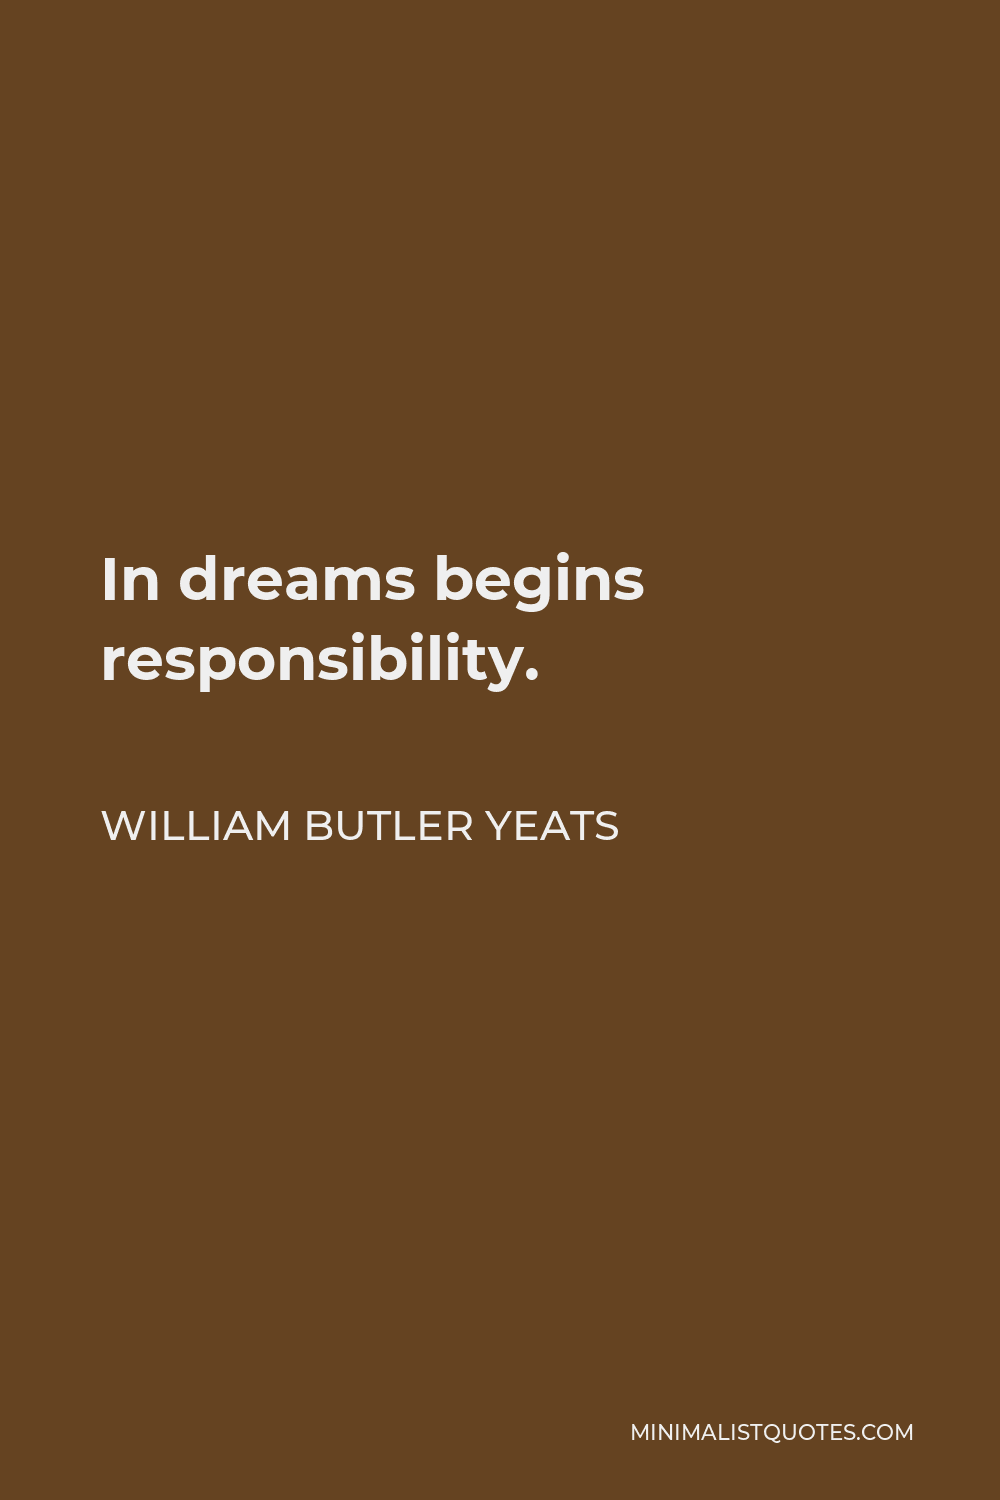 William Butler Yeats Quote - In dreams begins responsibility.